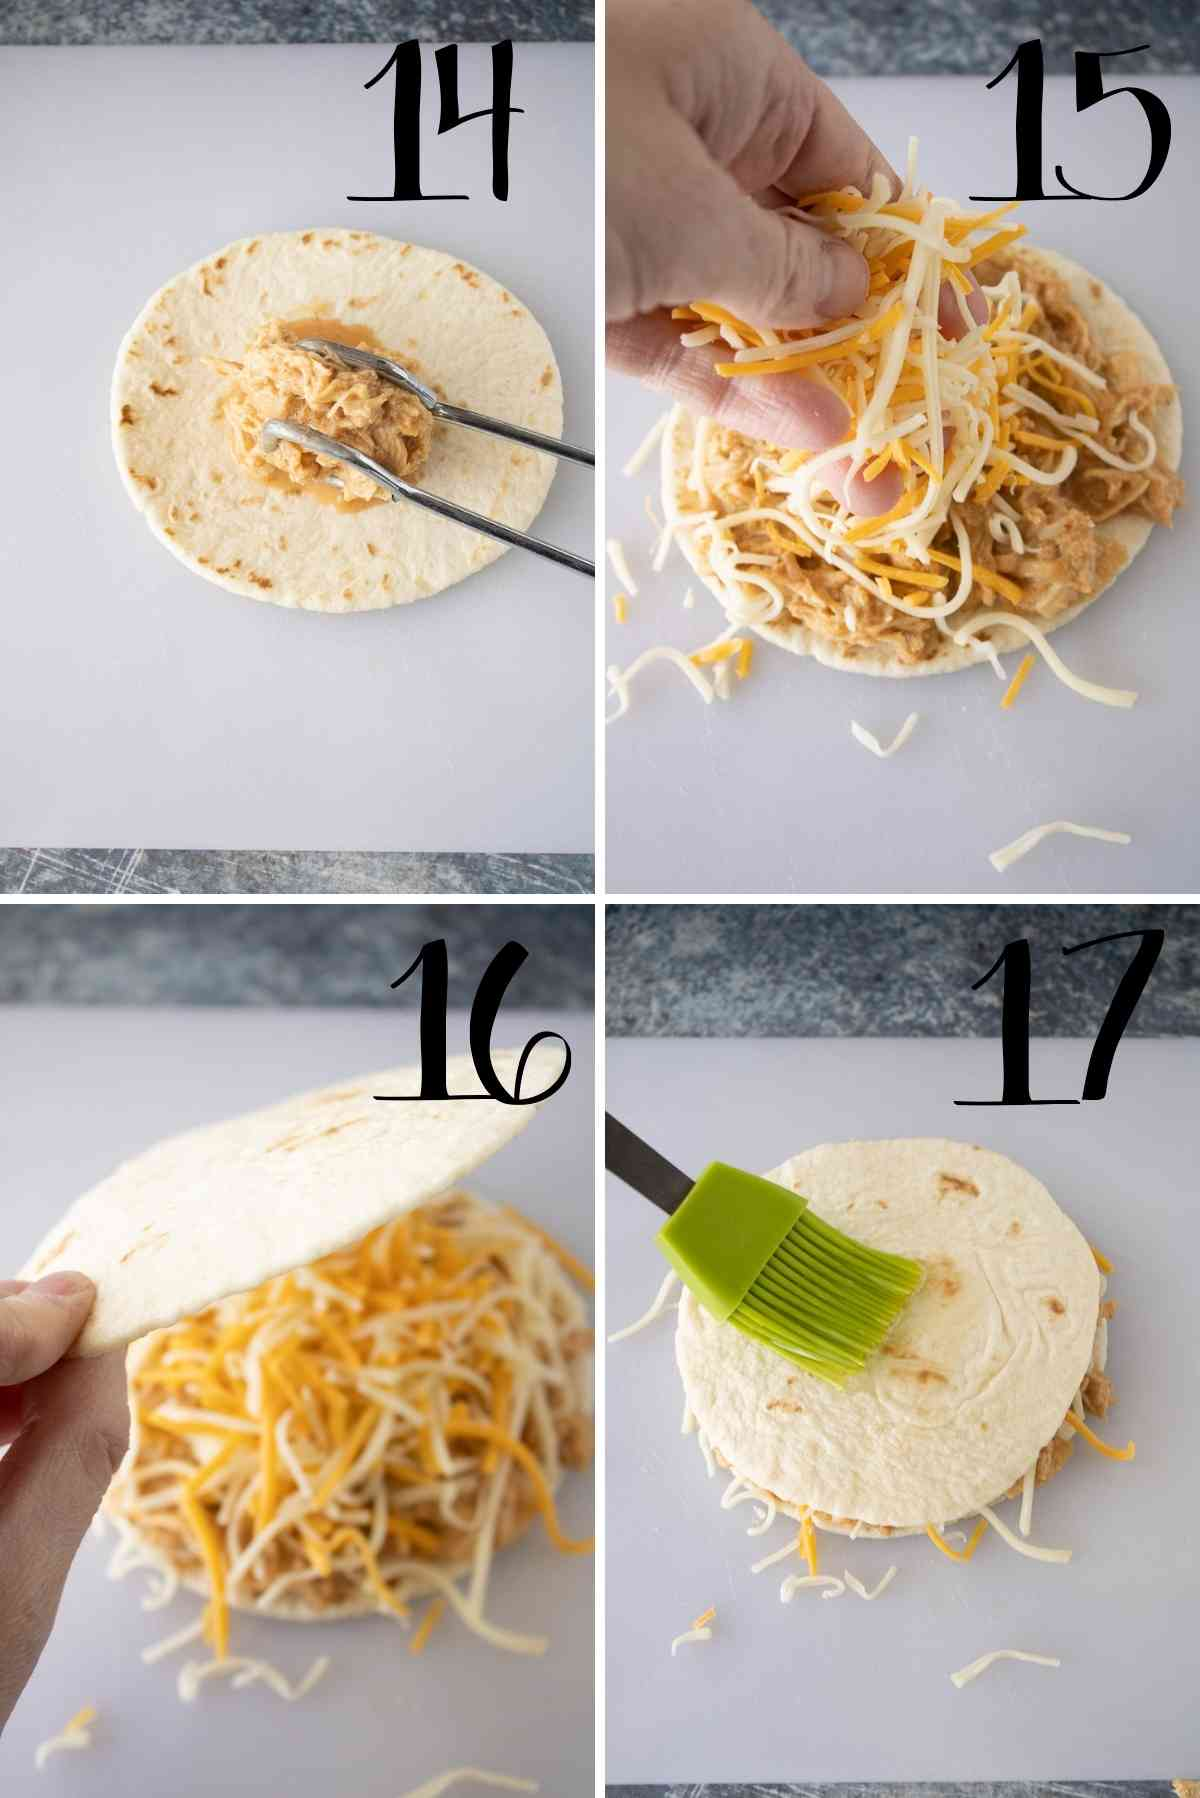 Put chicken and cheese on street tortilla and brush top with olive oil